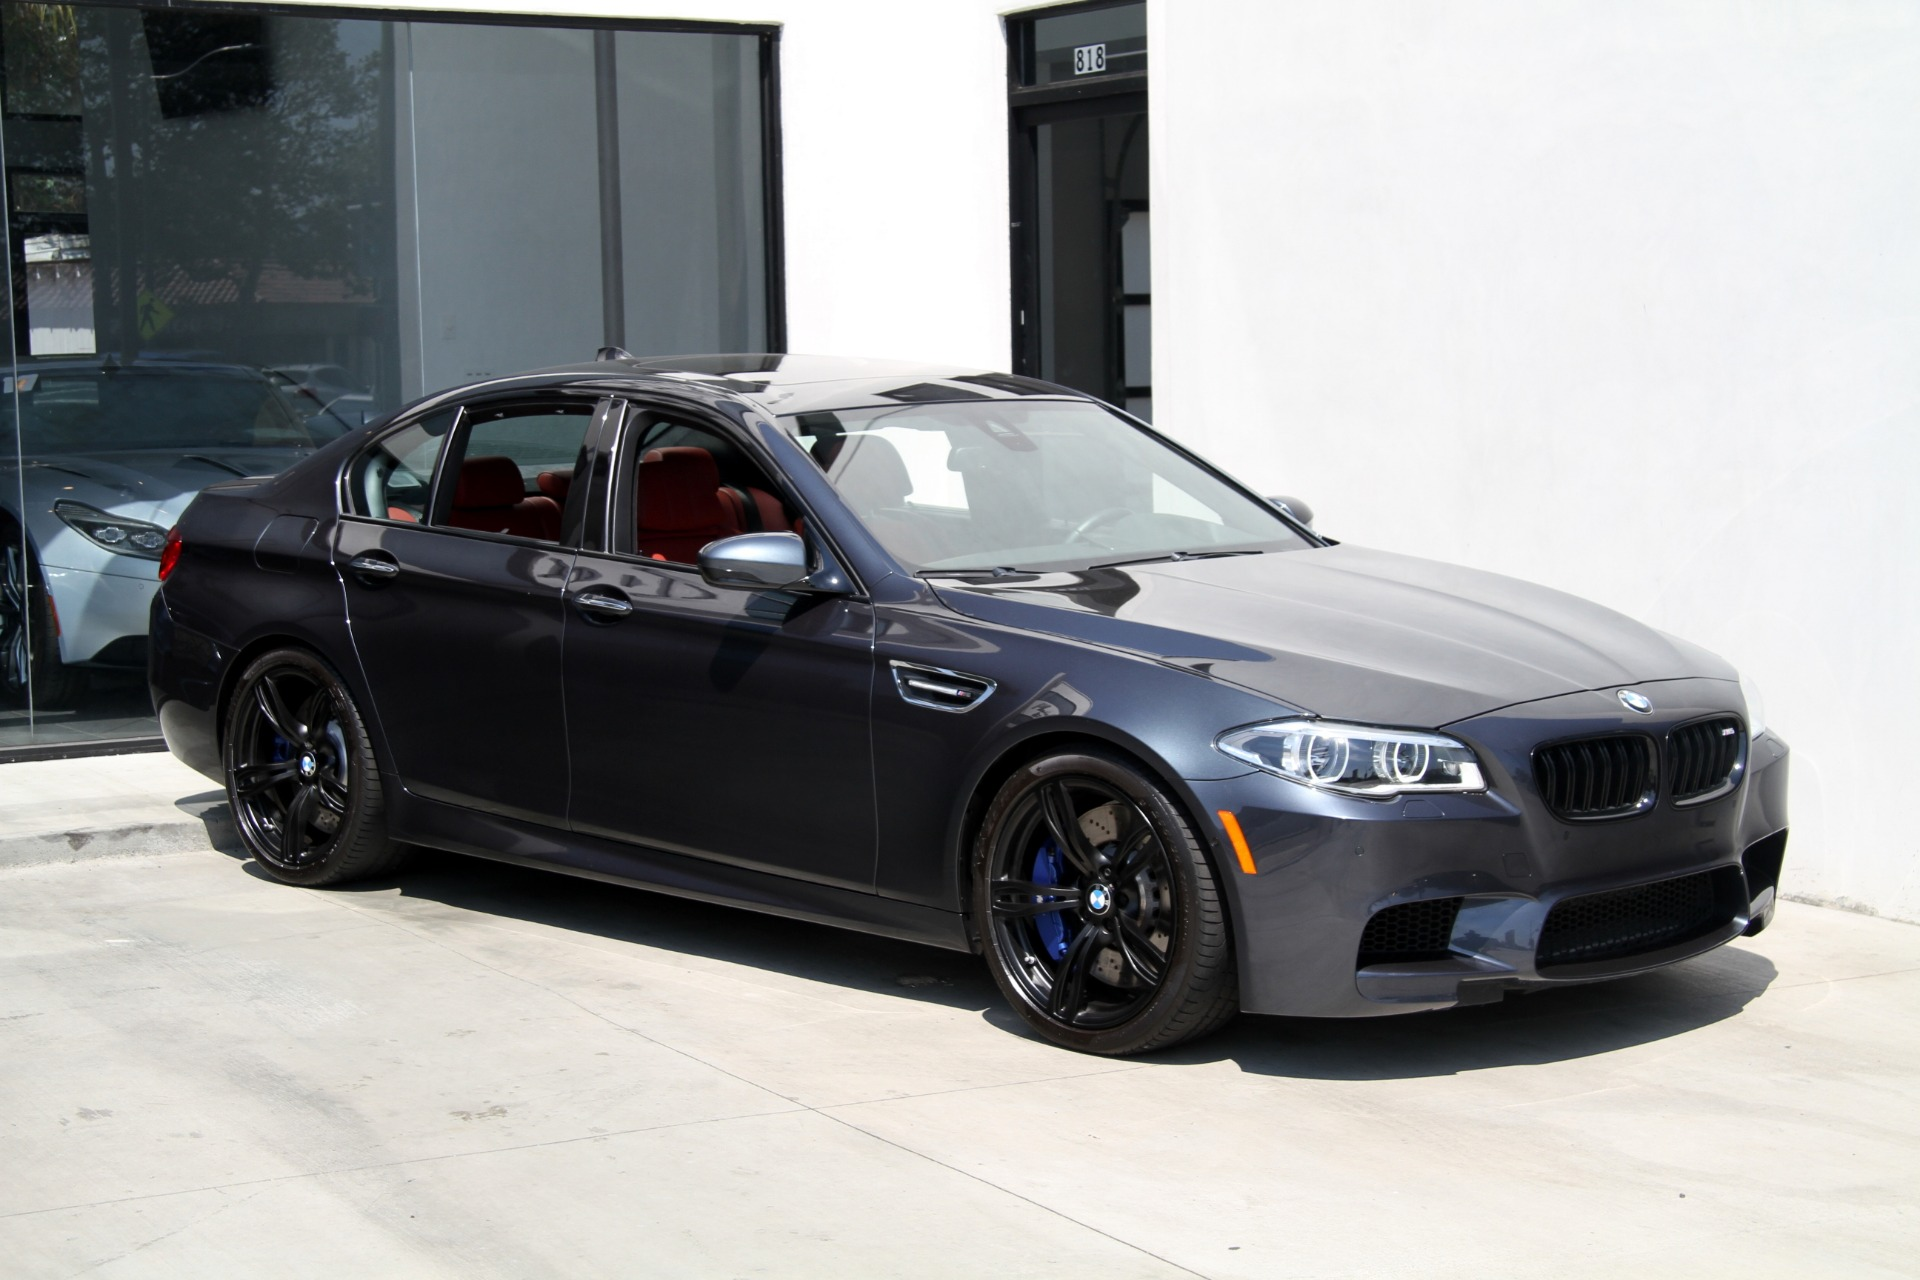 2016 bmw m5 competition package stock 6246 for sale near redondo beach ca ca bmw dealer. Black Bedroom Furniture Sets. Home Design Ideas